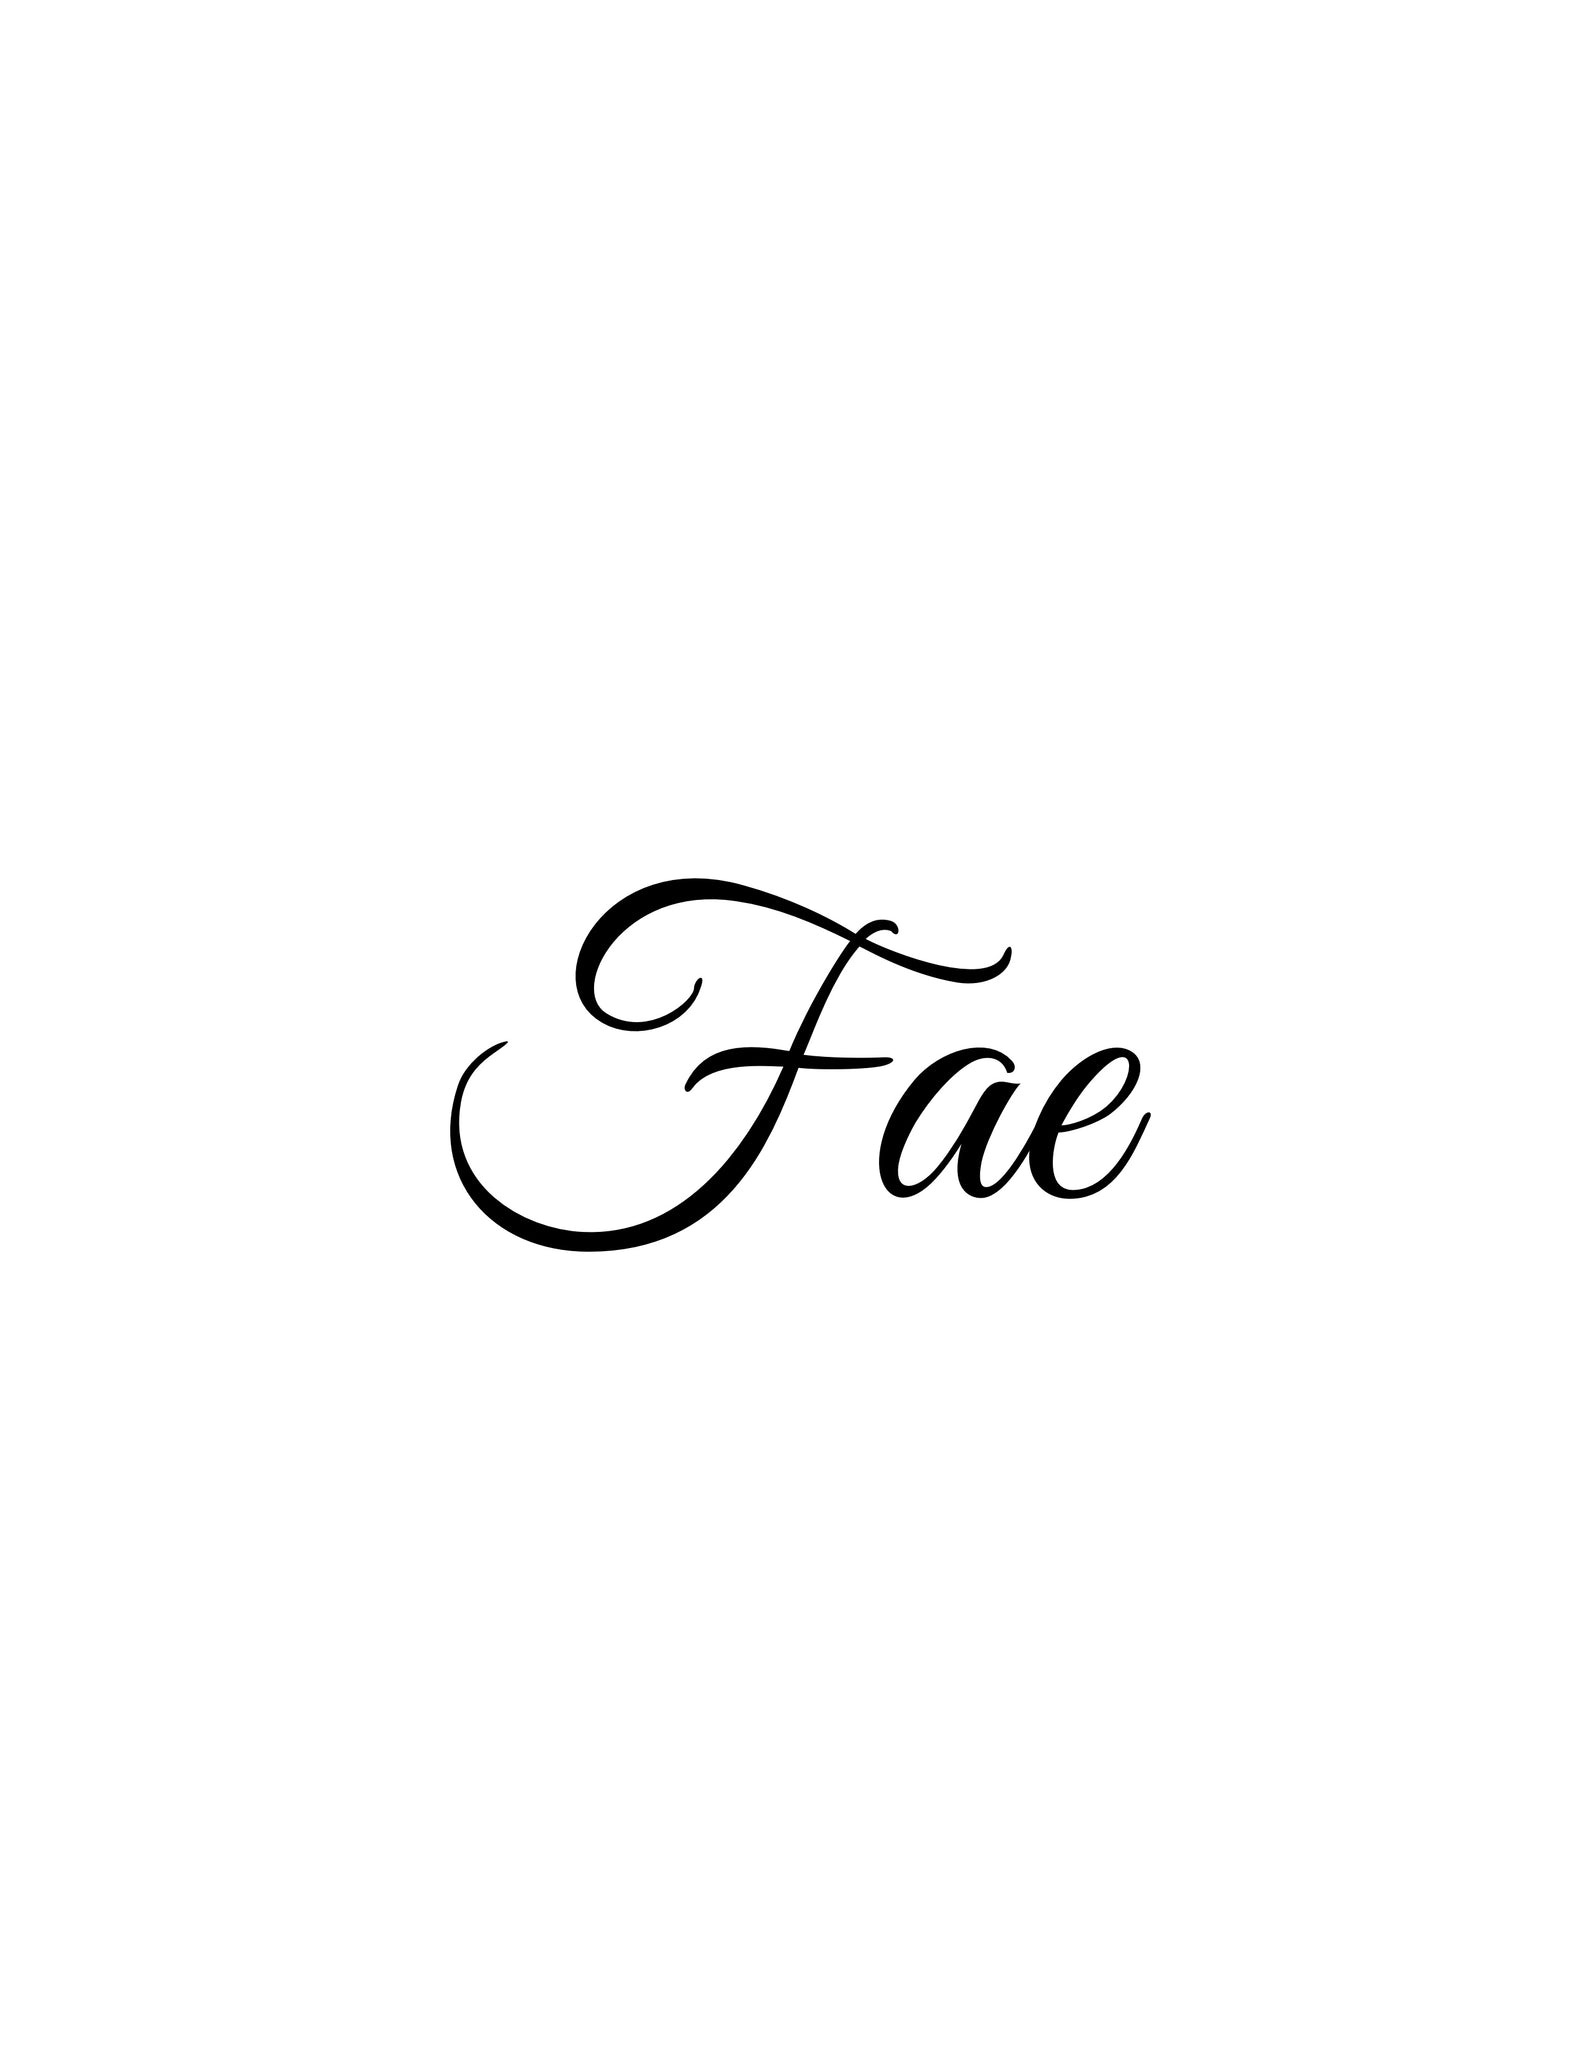 Fae (original, system approach)